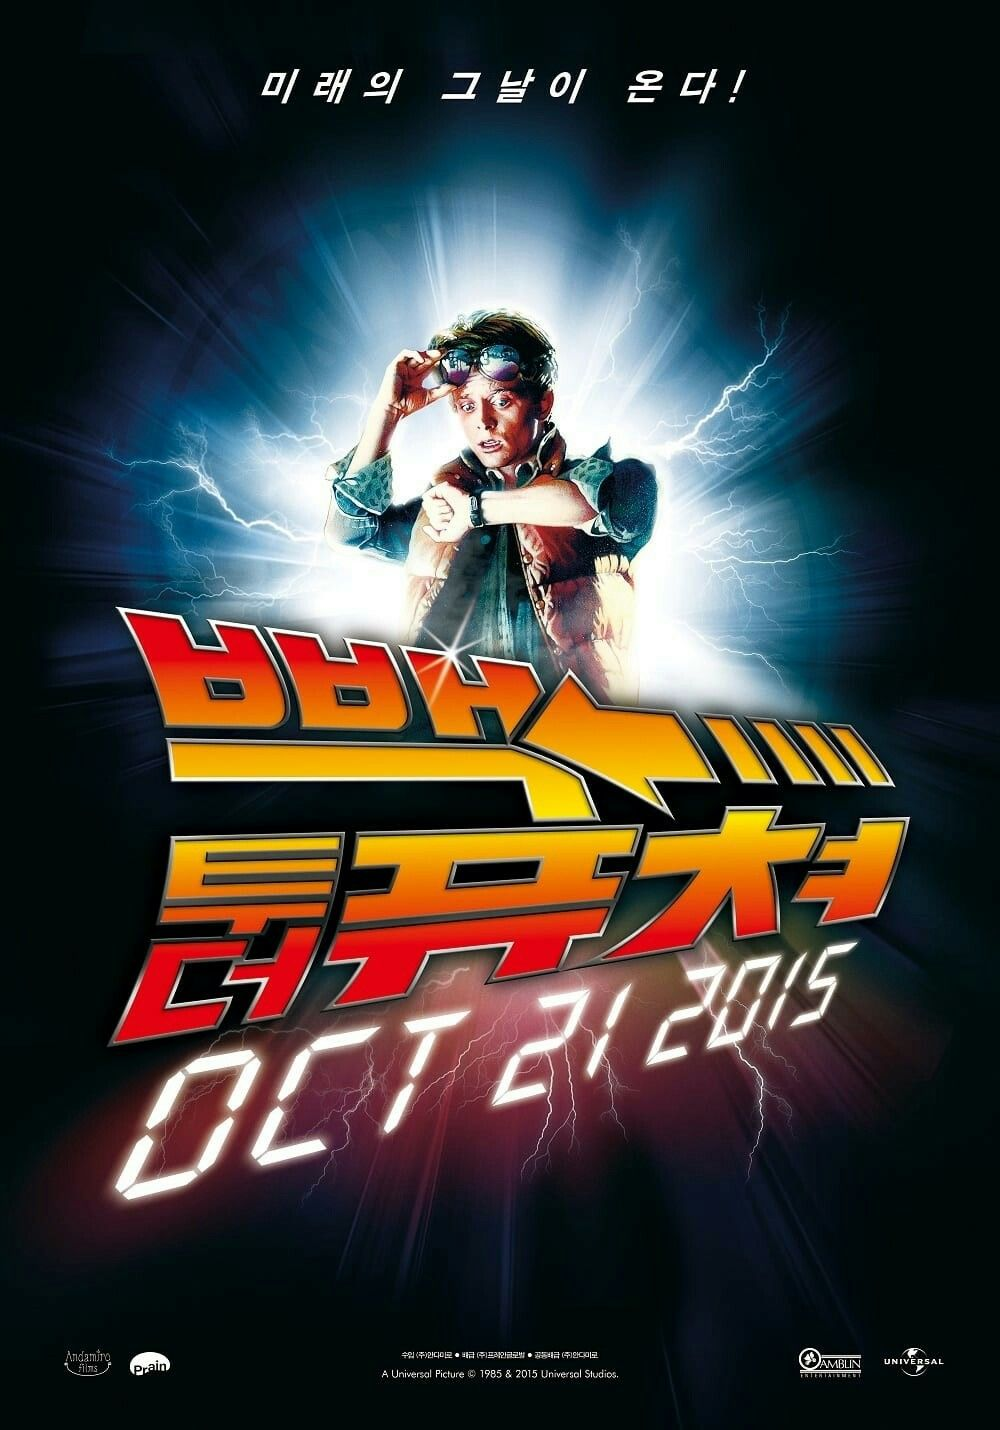 Back To The Future Movie Posters Backtothefuture Bttf Scifi